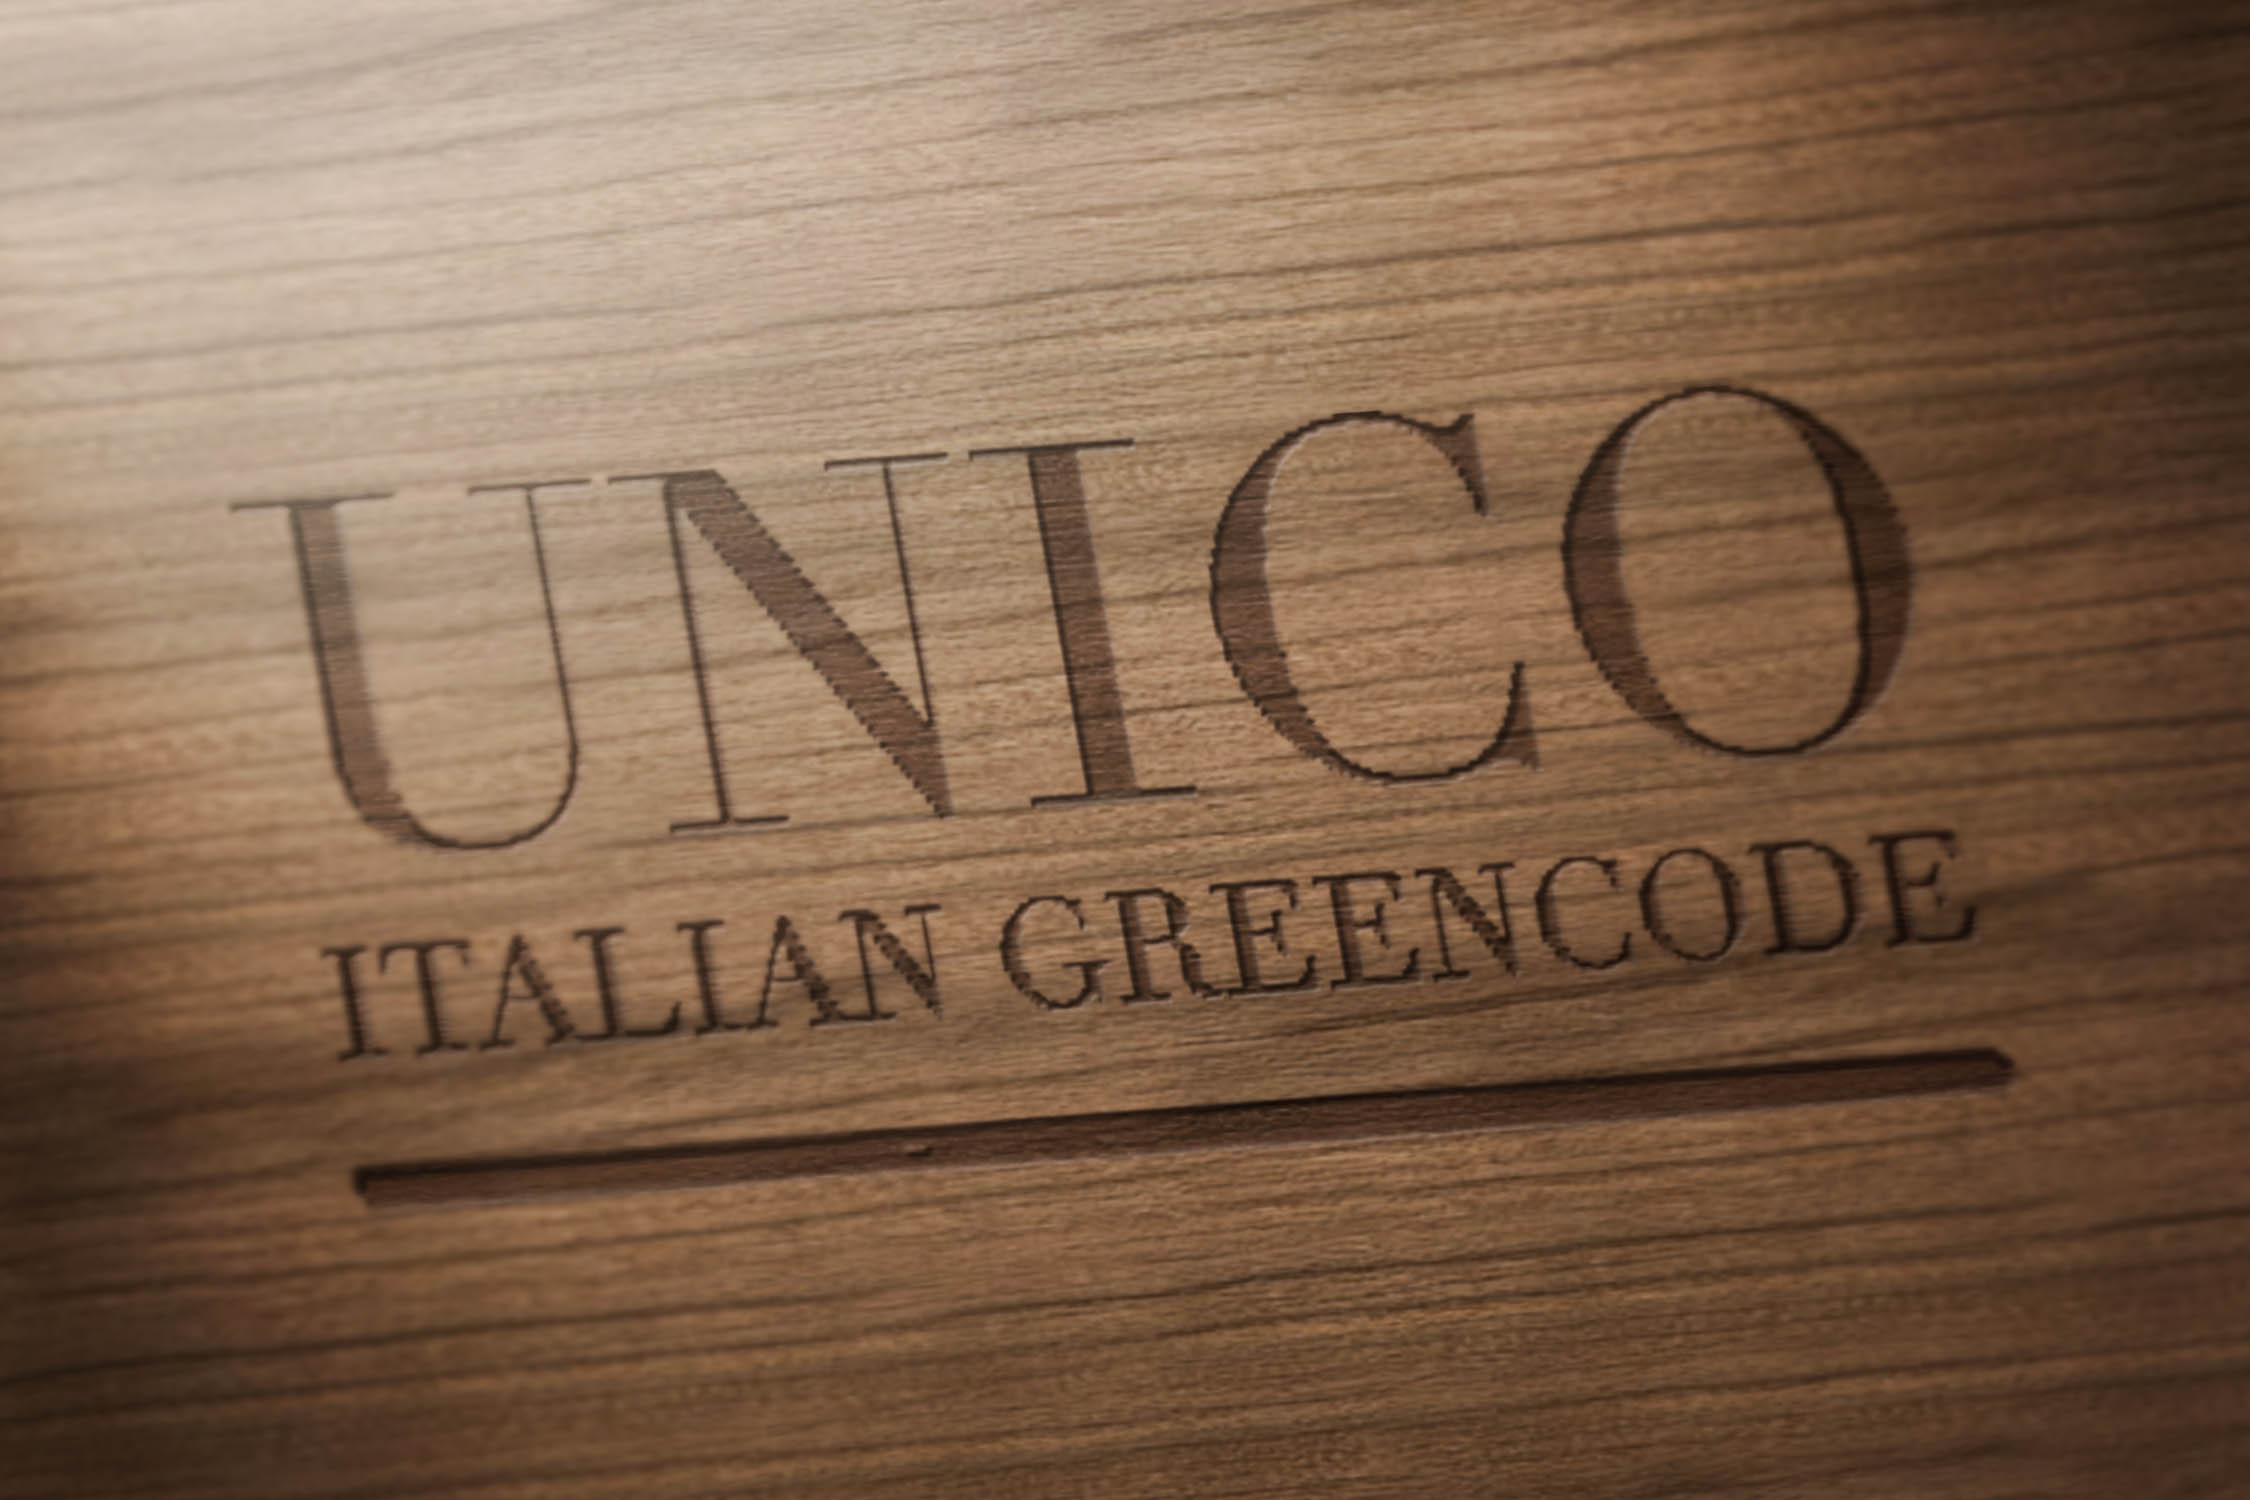 Logo Unico Green Code